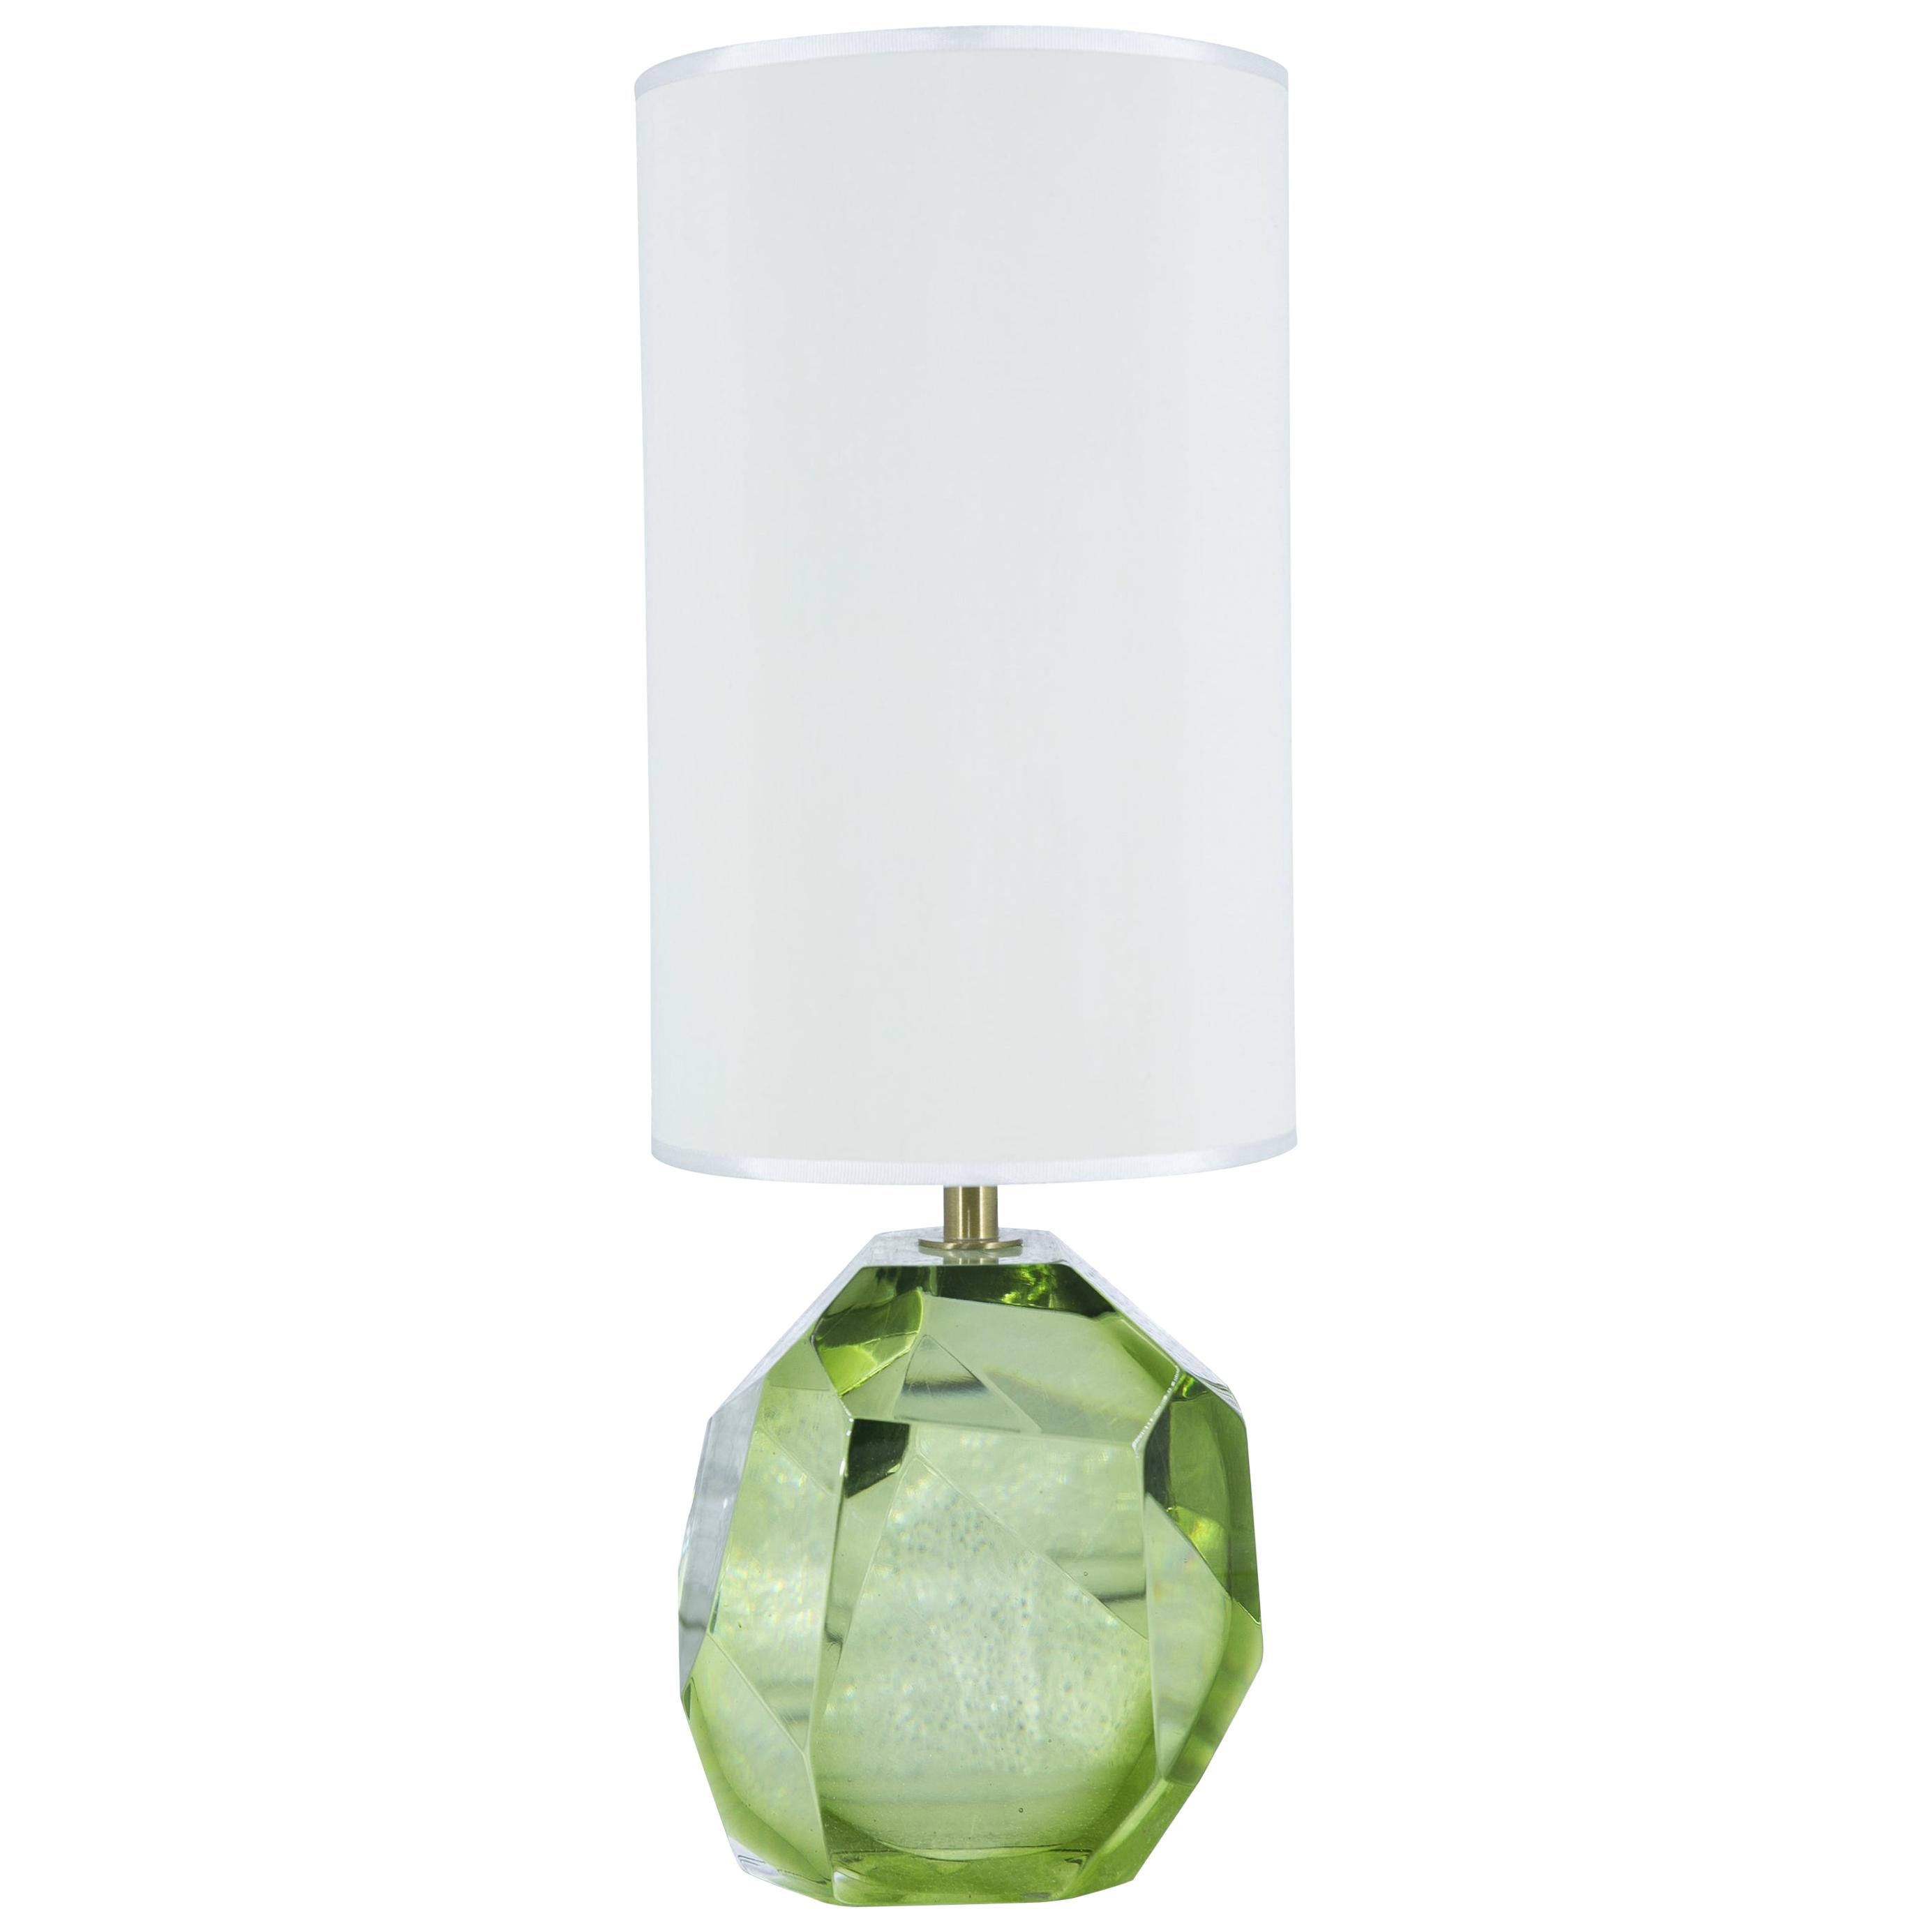 Prism Murano Glass Table Lamp, Made in Italy, Green Color